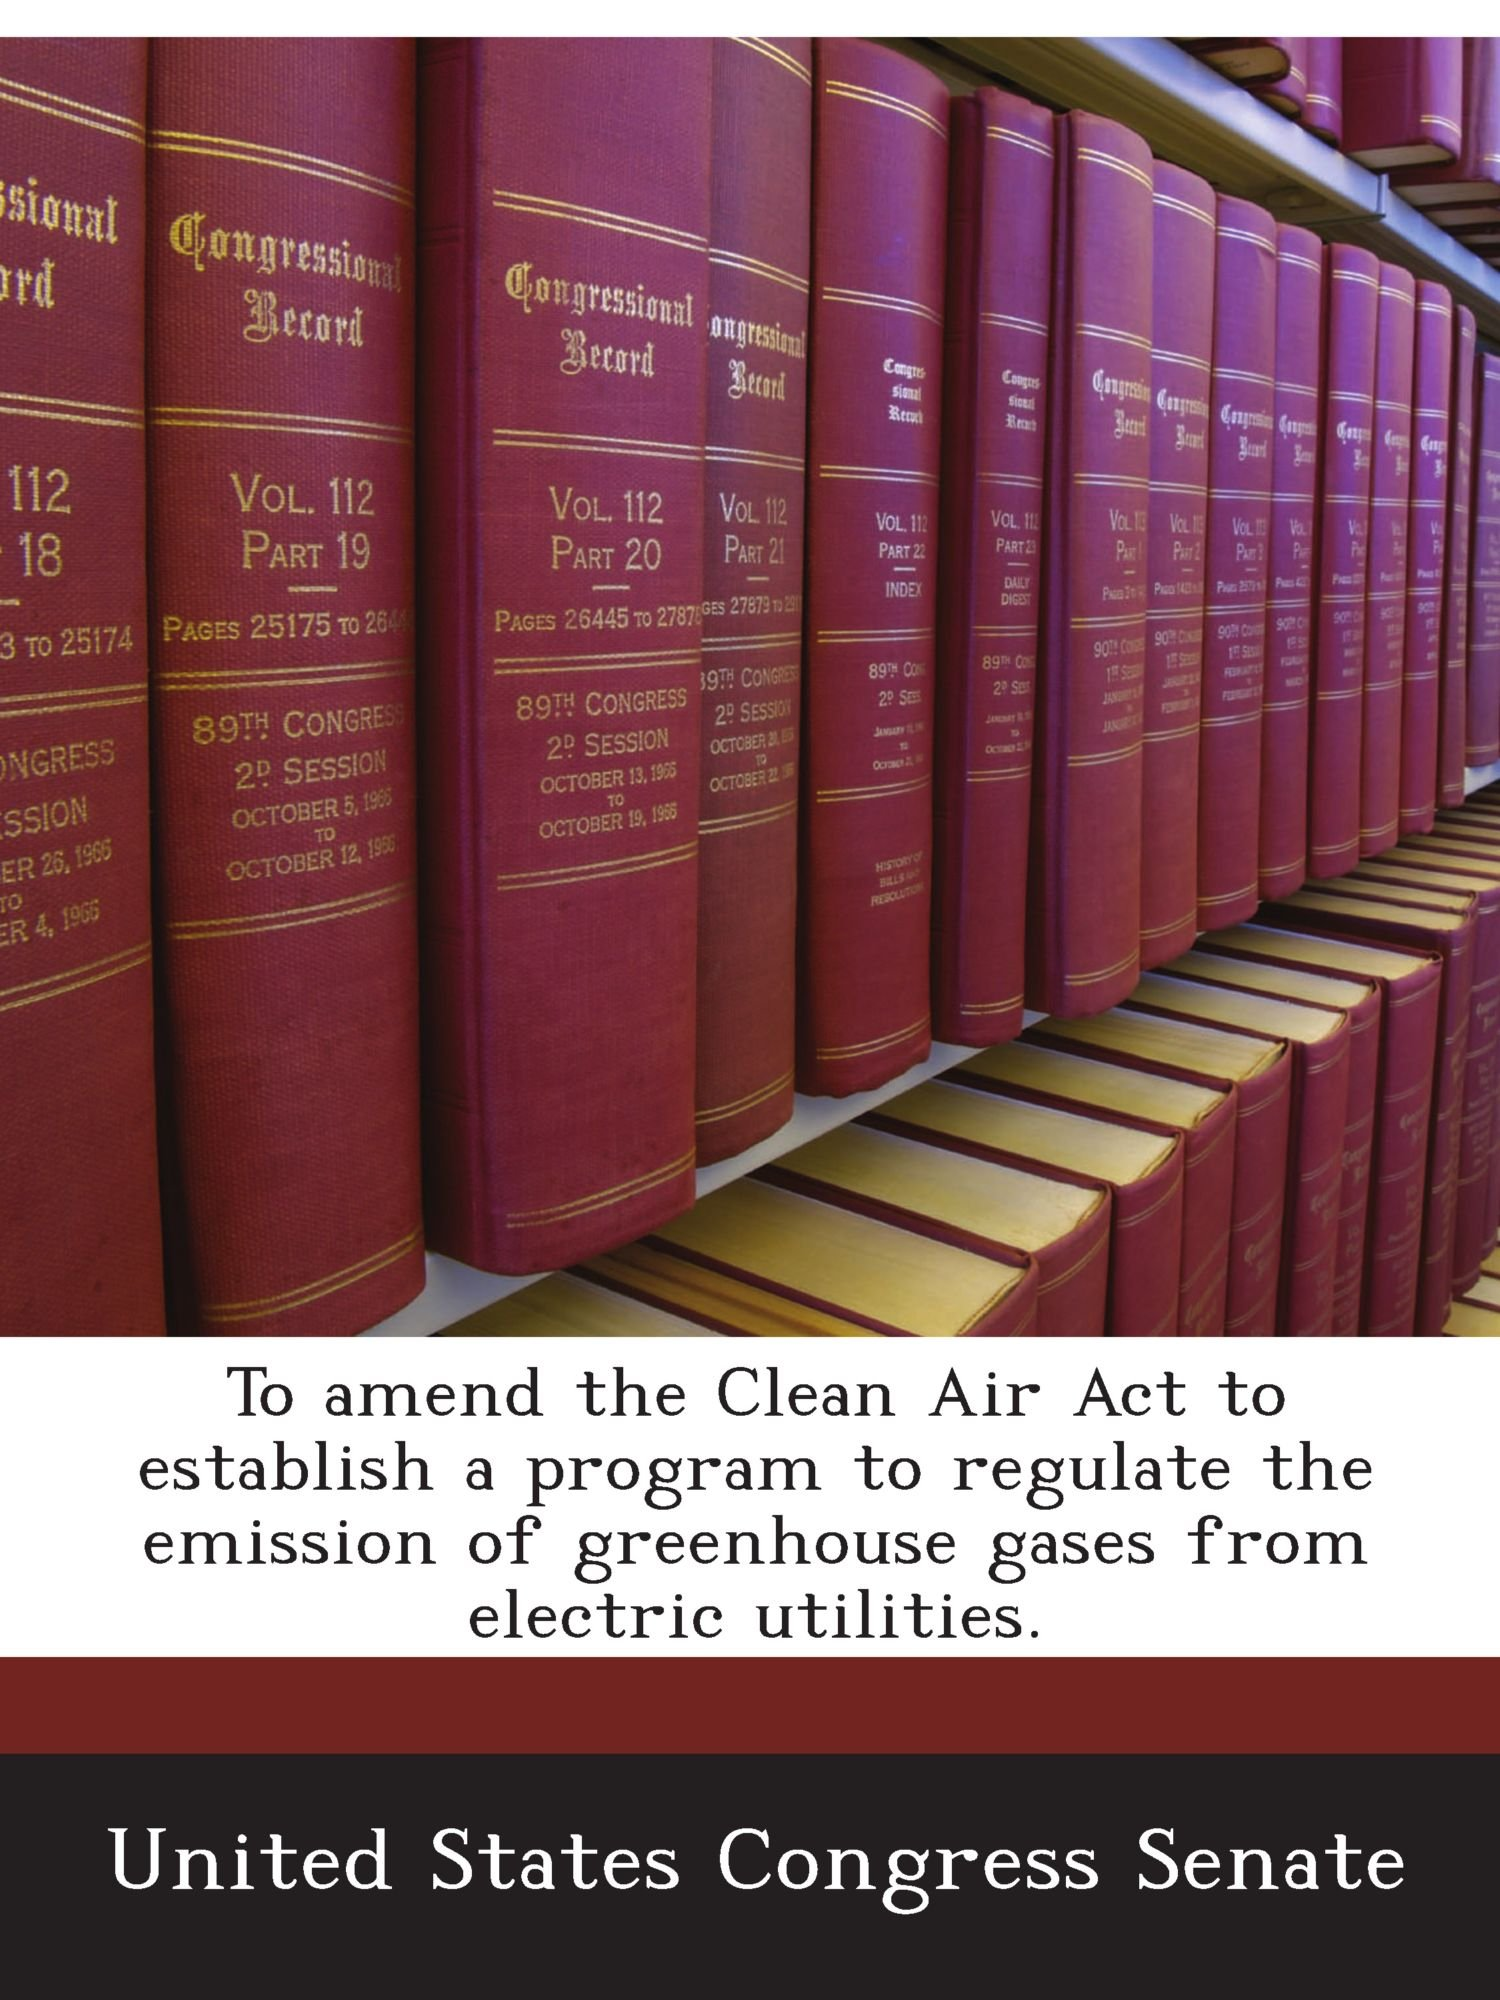 To amend the Clean Air Act to establish a program to regulate the emission of greenhouse gases from electric utilities.